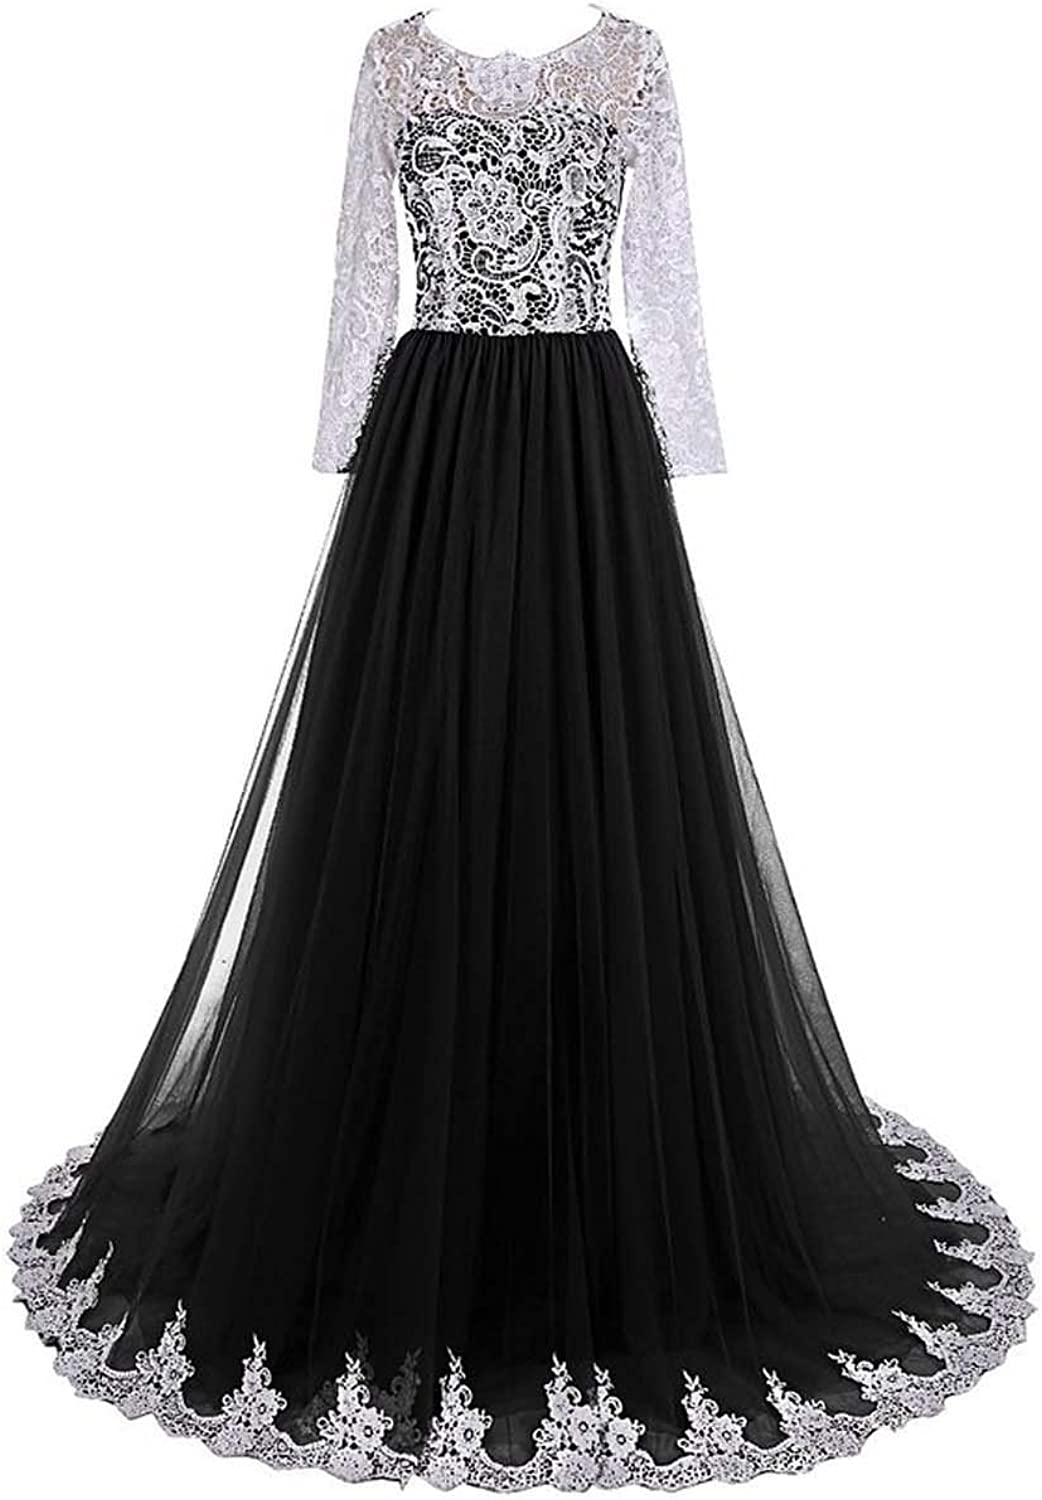 Ruiyuhong Women's Long Sleeve Lace Prom Dresses Formal Evening Gowns